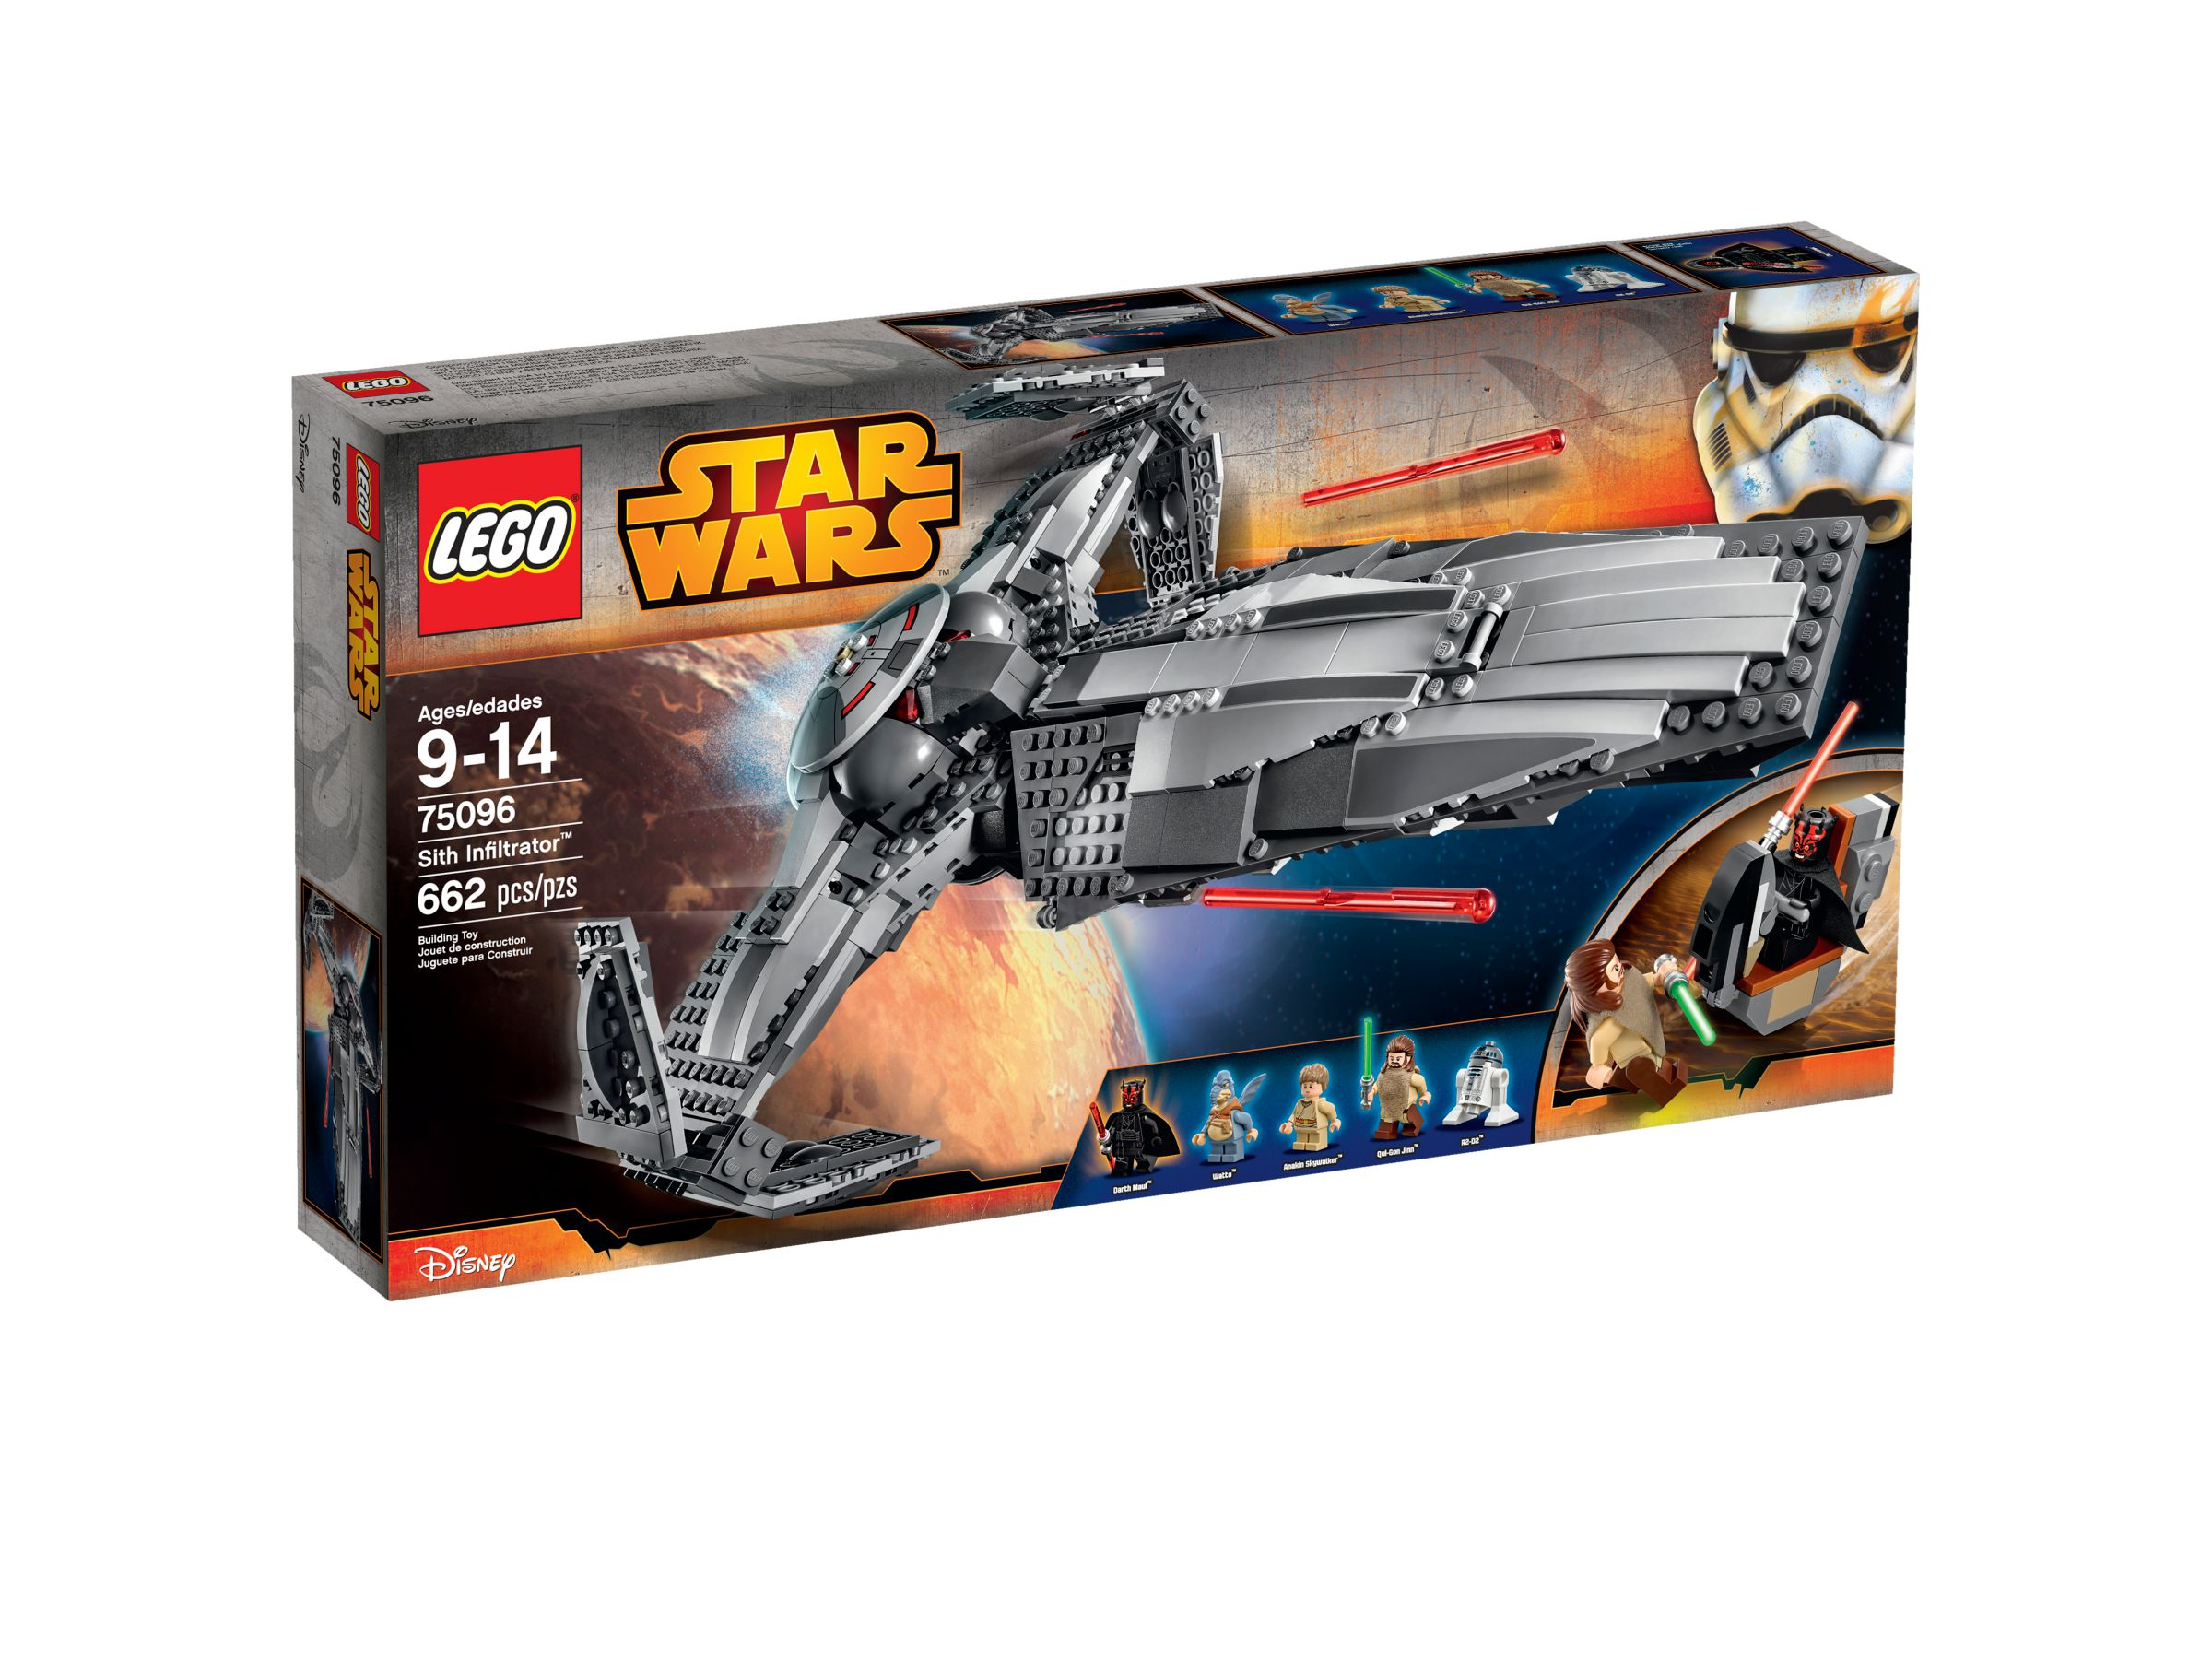 lego 75096 sith infiltrator star wars 2015 sith infiltrator brickmerge. Black Bedroom Furniture Sets. Home Design Ideas